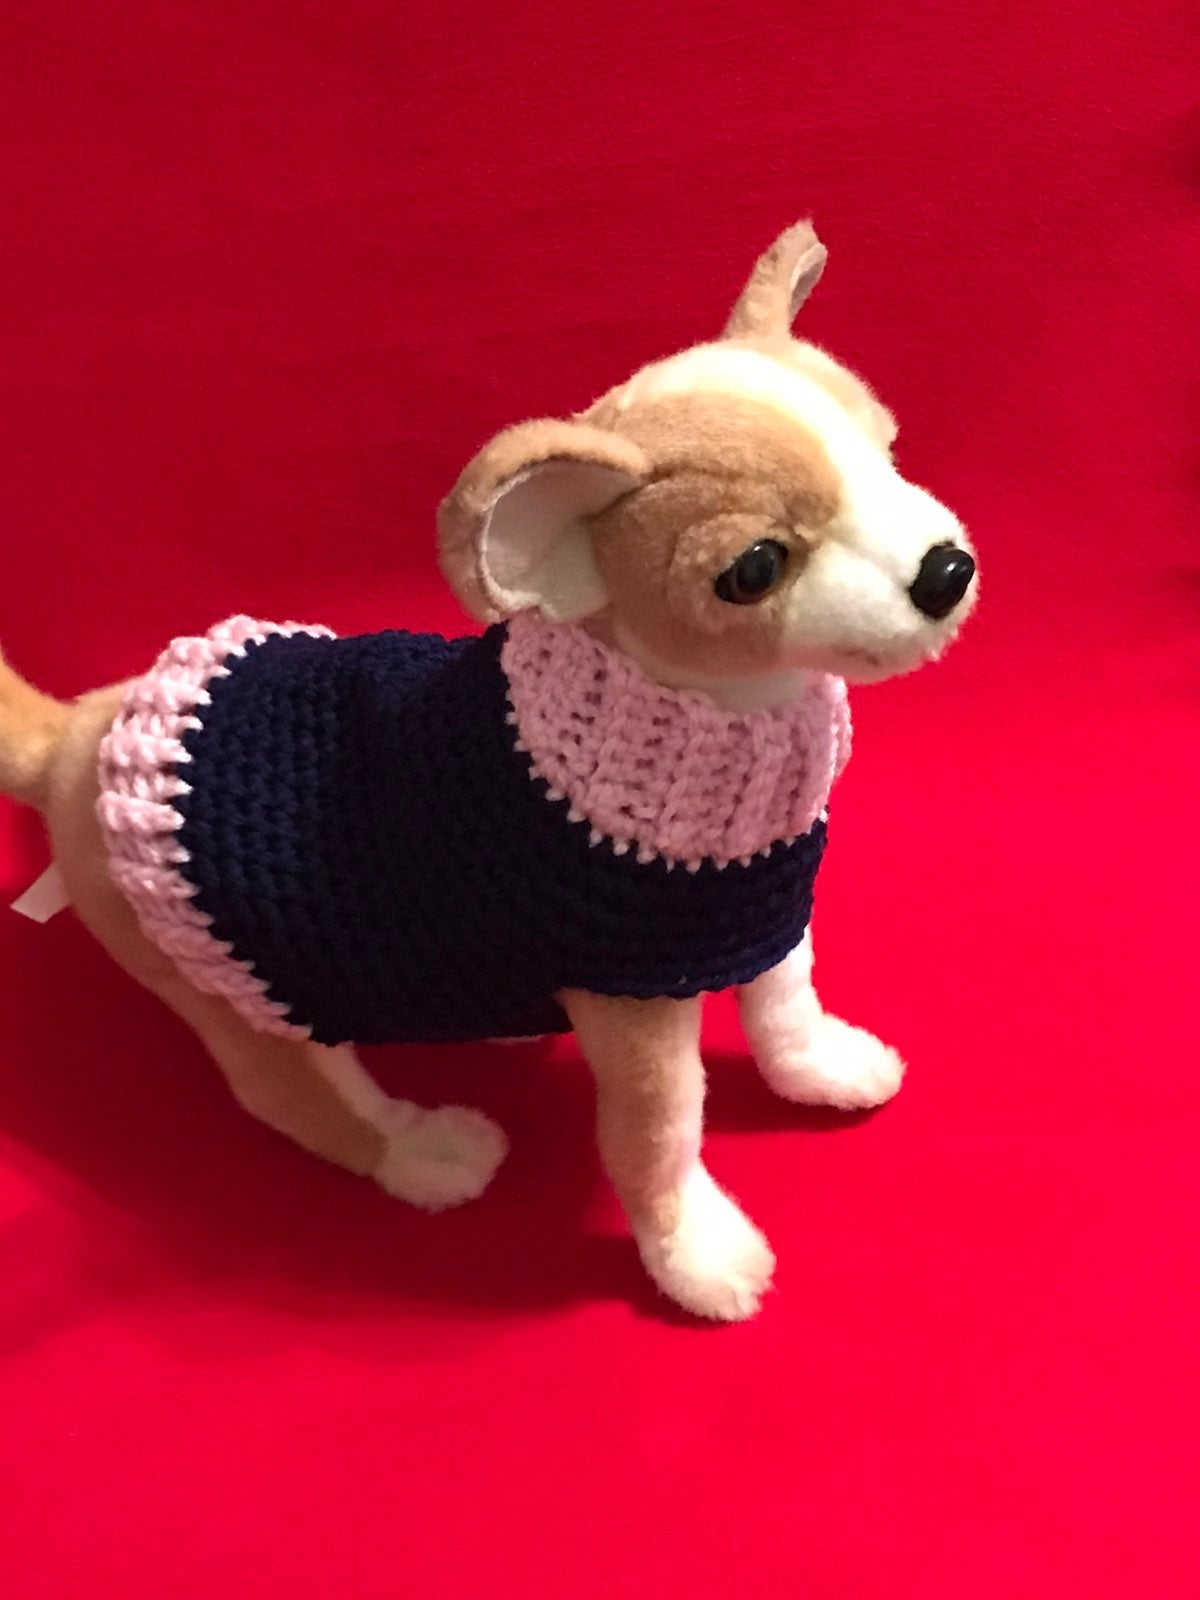 Teacup or Small dog Sweater Size XS/S